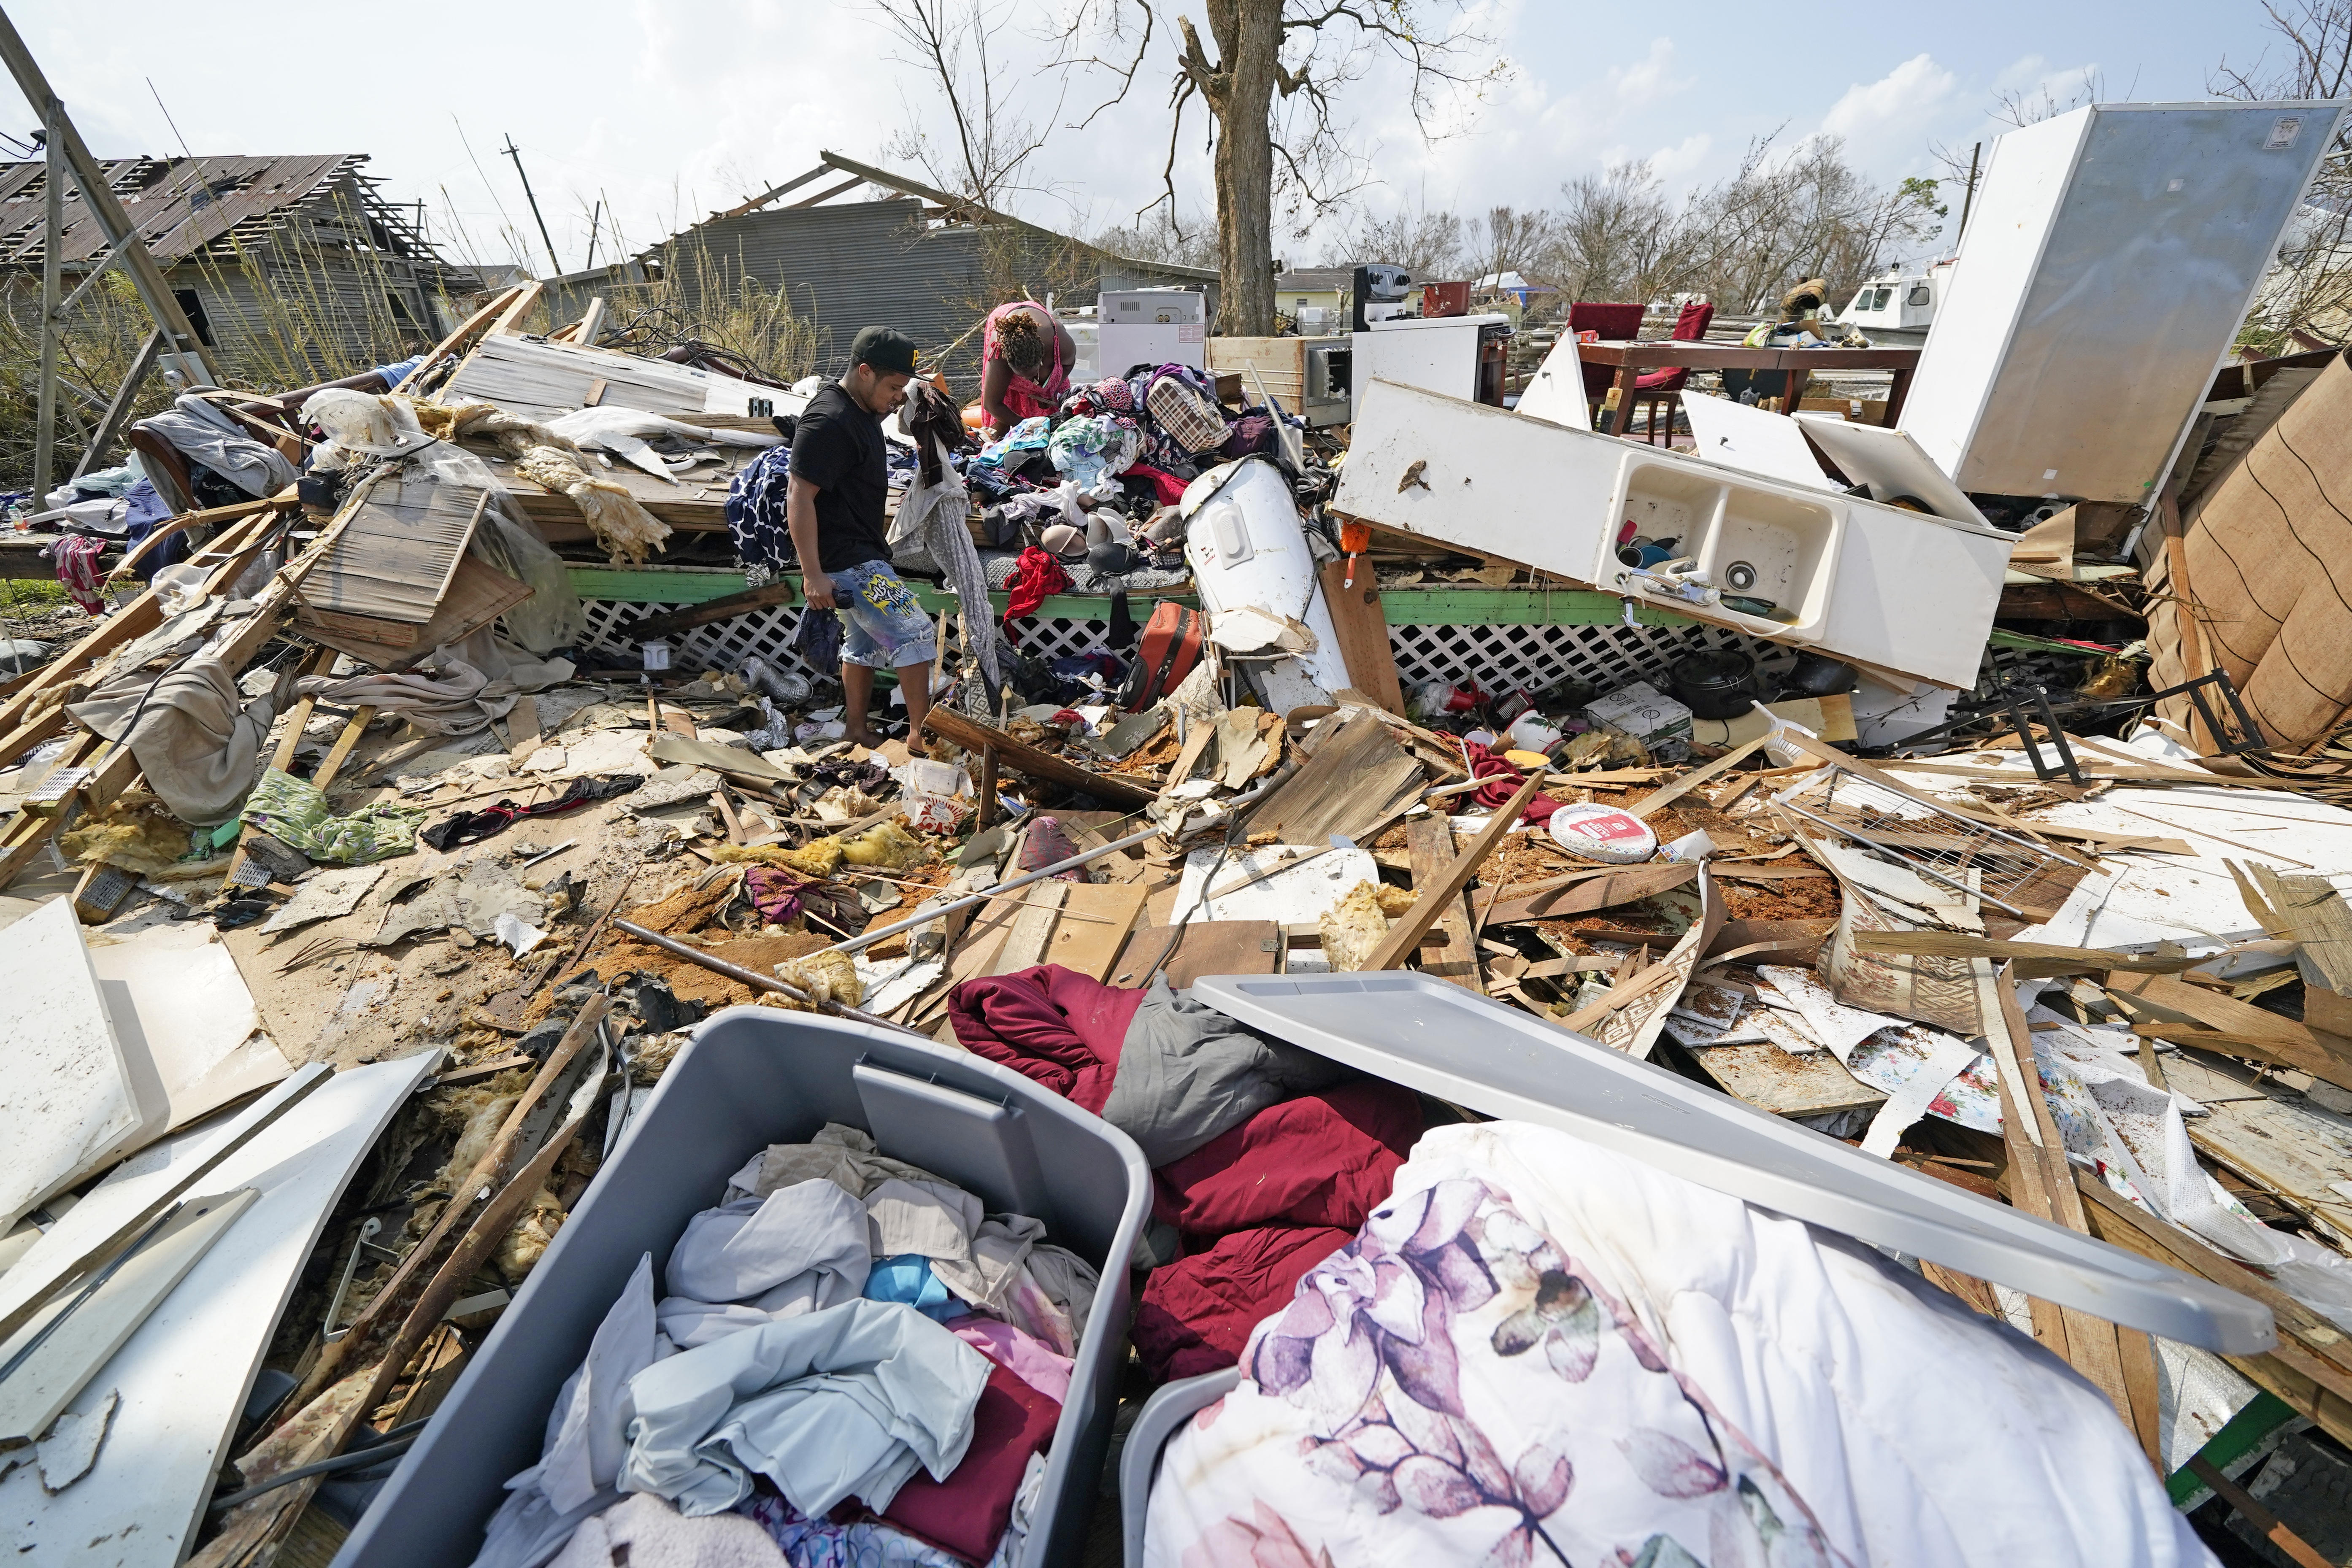 Jose Duran, left, helps his mother, Cruz Palma, sift through what remains of her home in Golden Meadow, La.